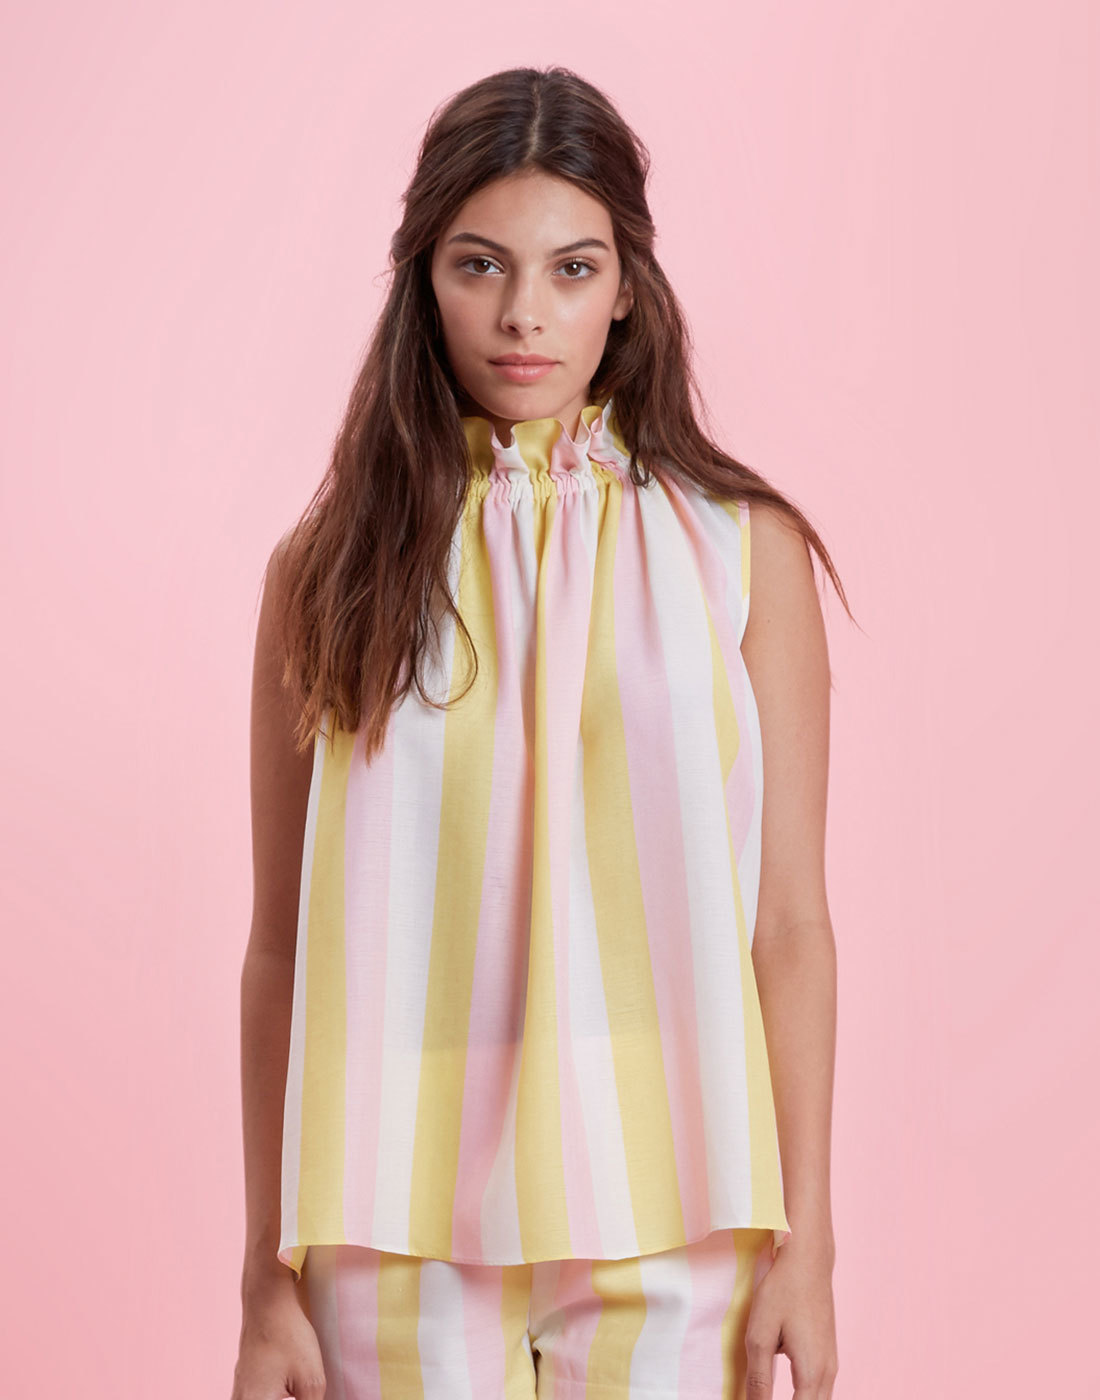 TRAFFIC PEOPLE Retro Candy Stripe Buttercup Top